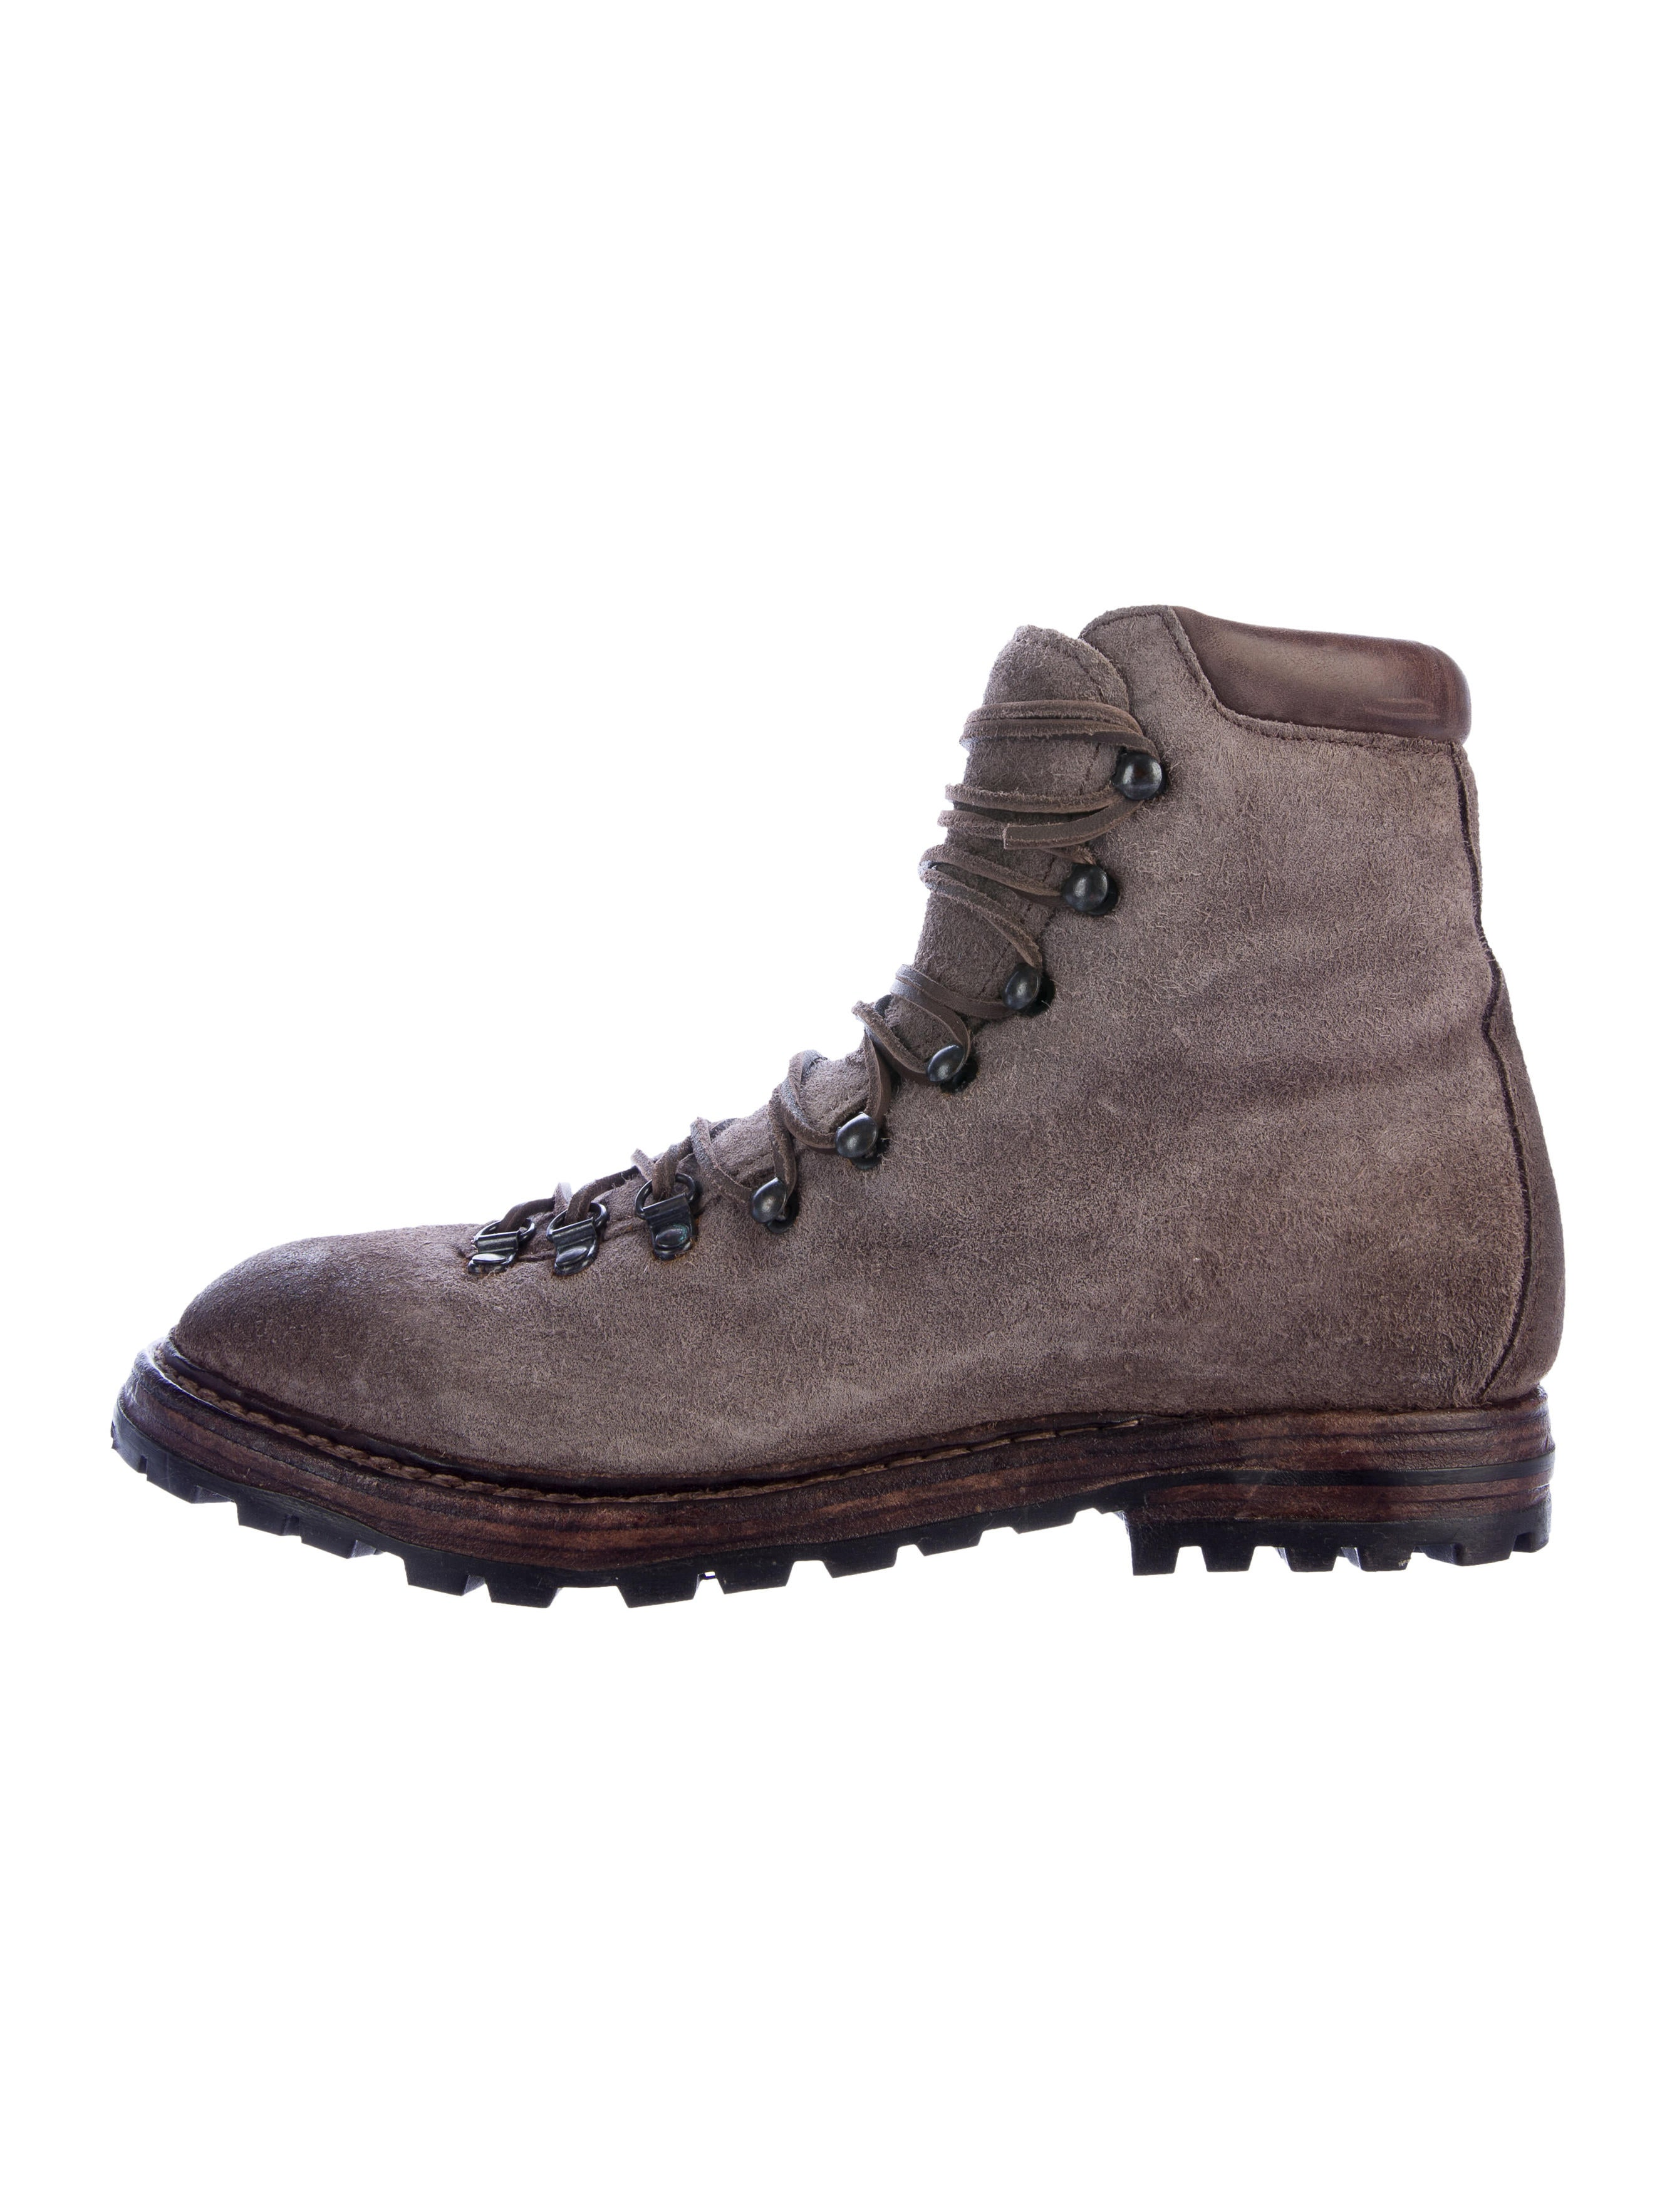 officine creative distressed suede hiking boots shoes